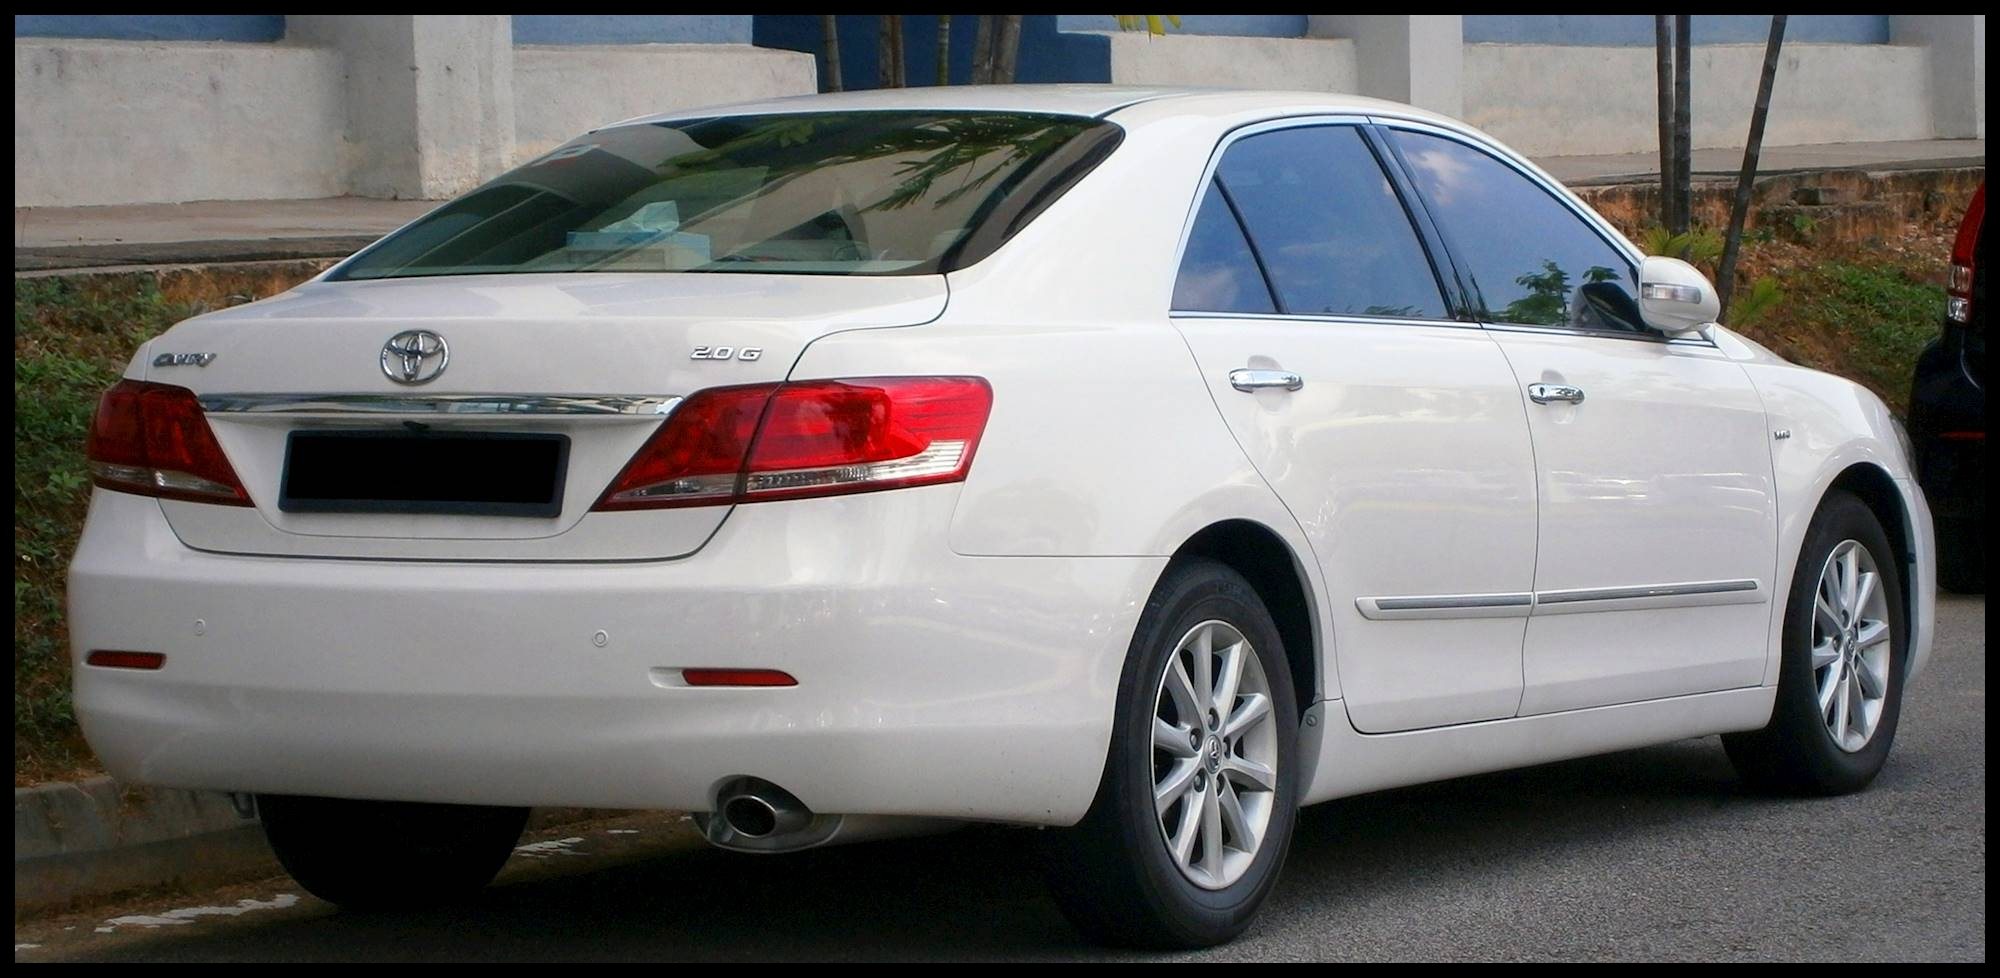 2009 Toyota Camry XLE V6 w Navigation System 4dr Sedan 6 spd sequential shift control auto w OD